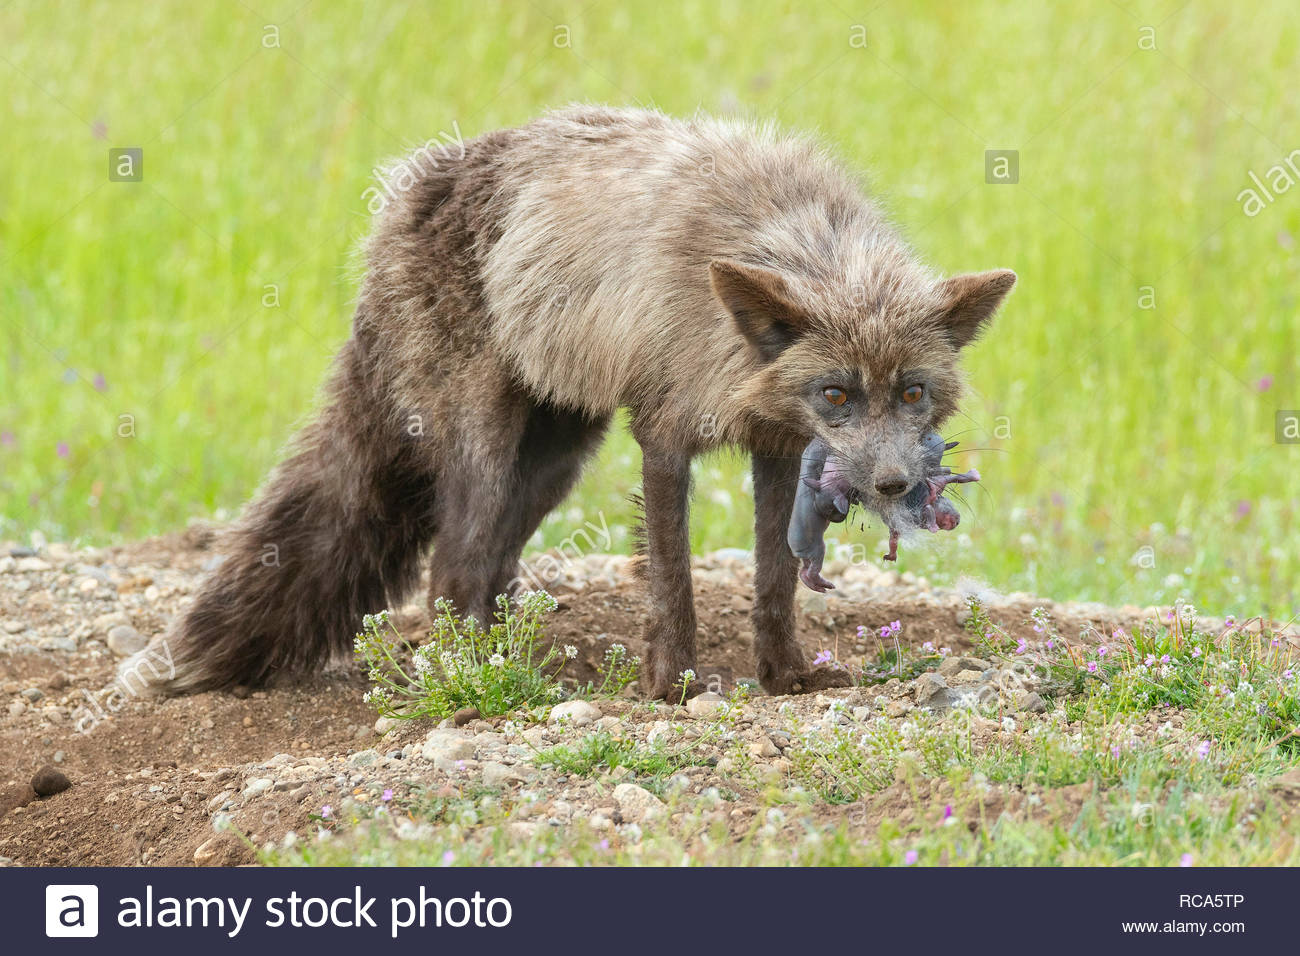 A red fox (Vulpes vulpes) emerges from a rabbit's den with a mouth full of newborn rabbits in San Juan Island National Historical Park on San Juan Isl - Stock Image